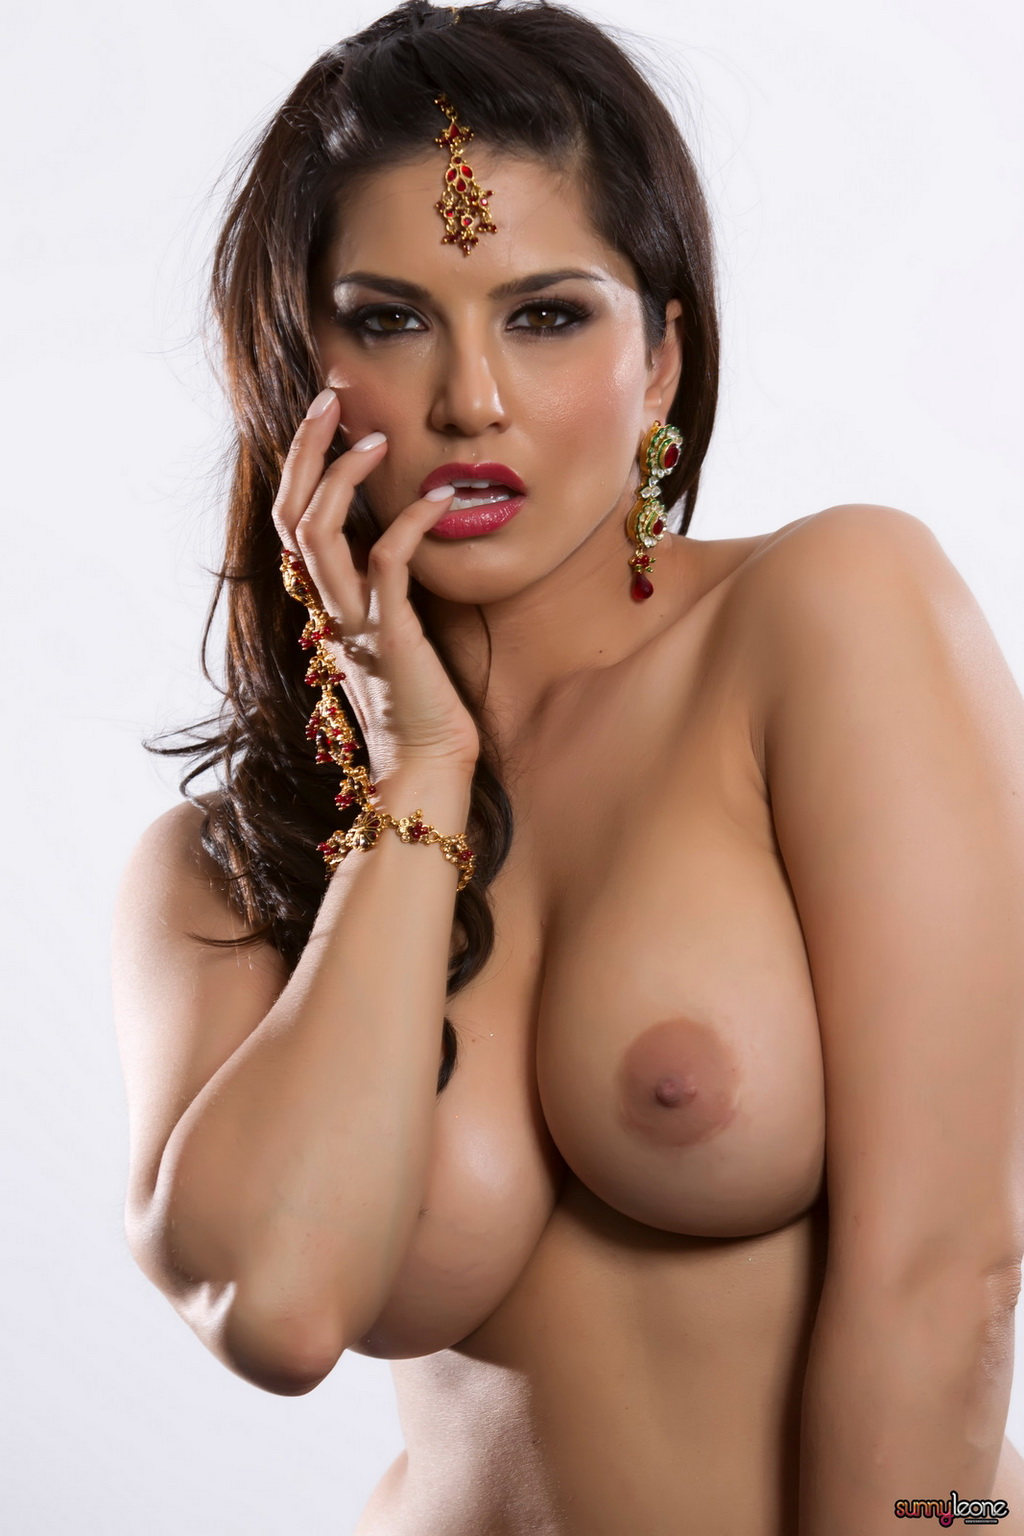 Opinion Sunny leone topless advise